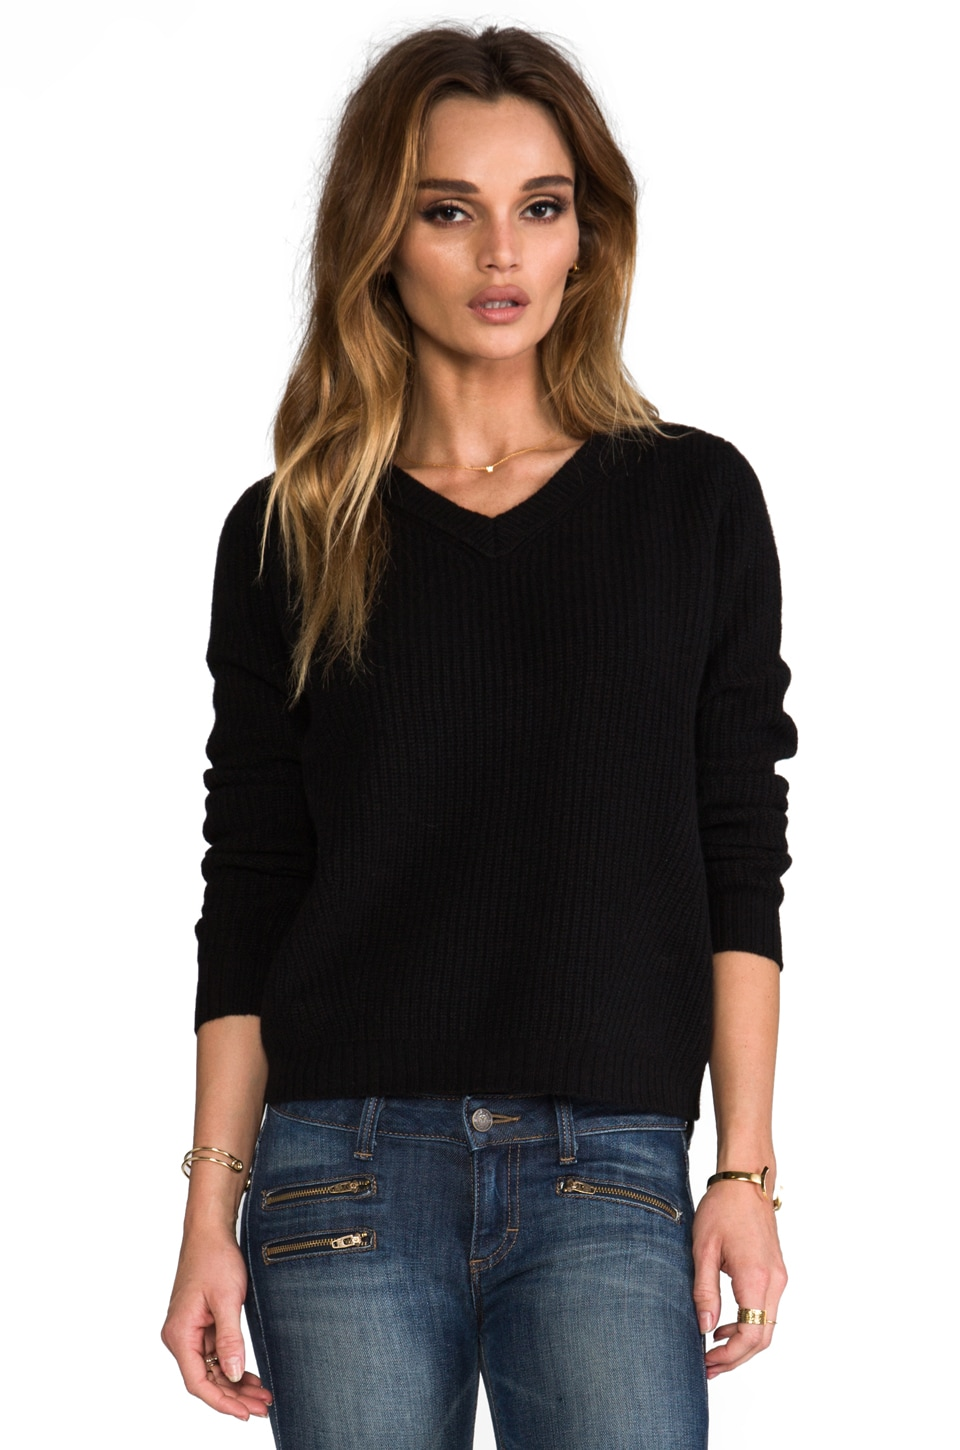 Inhabit Cashmere Shake in Black